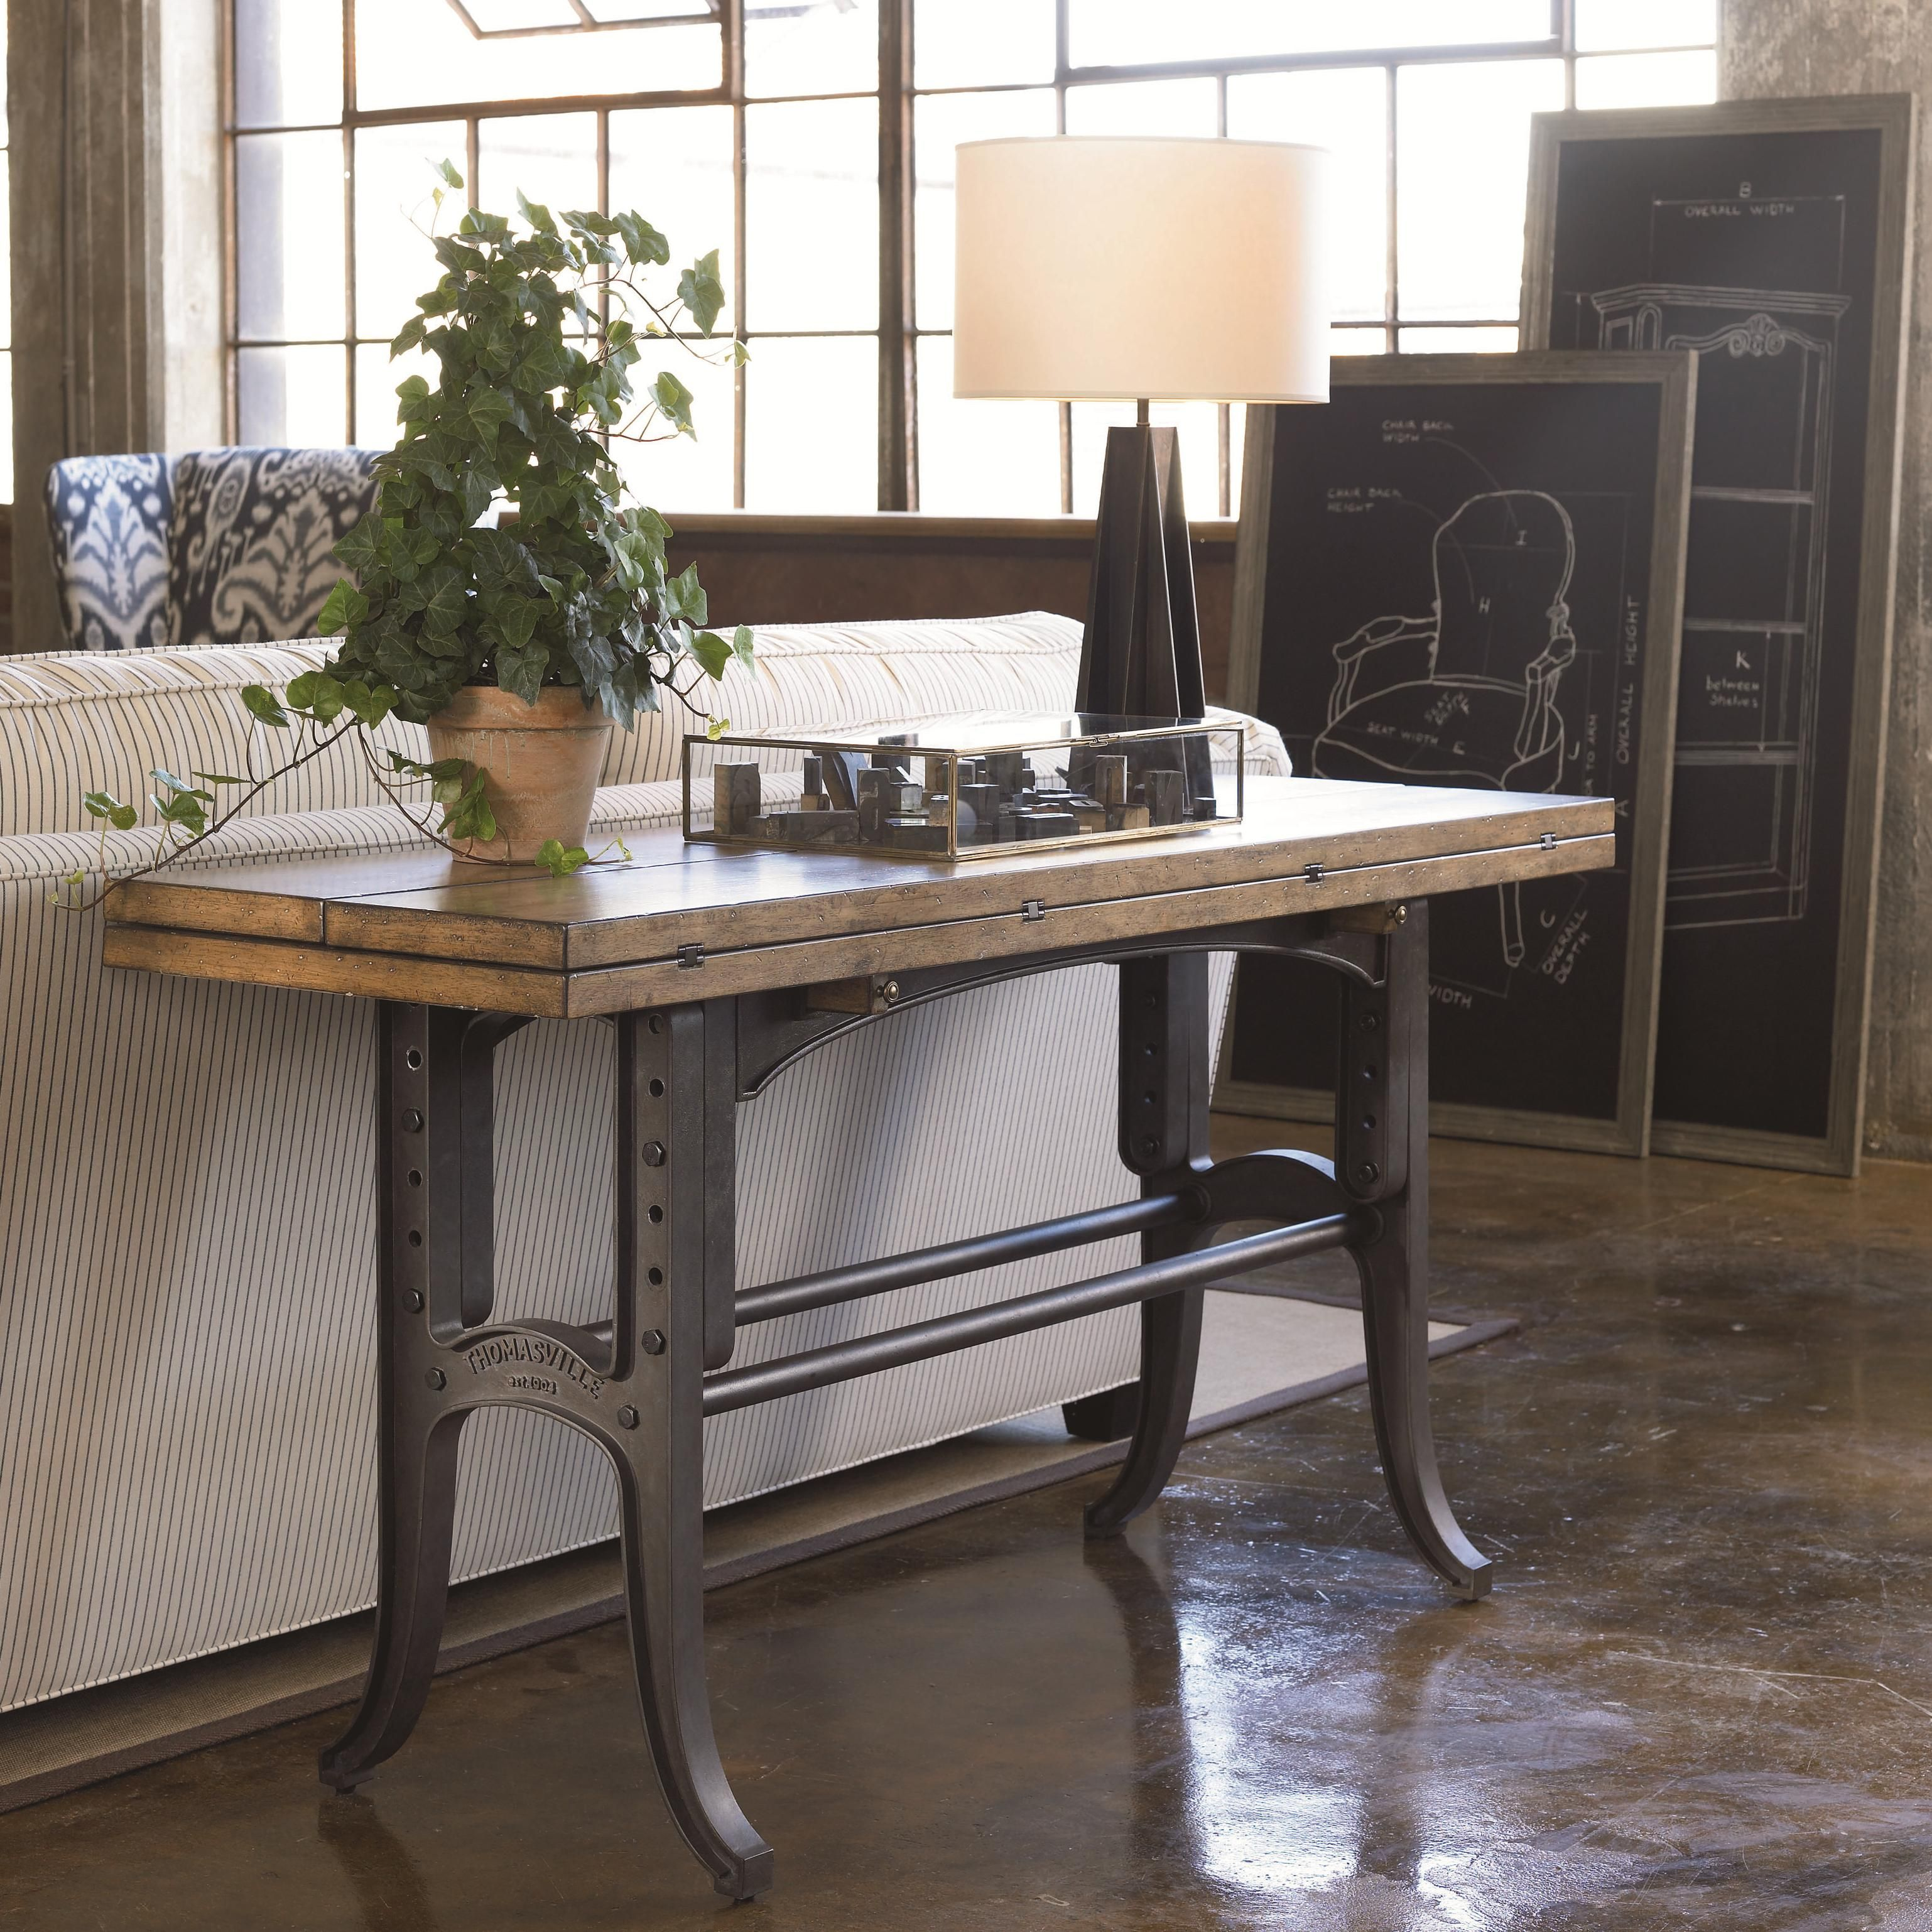 Reinventions boulton and watt flip top console table by reinventions boulton and watt flip top console table by thomasville industrial style geotapseo Gallery